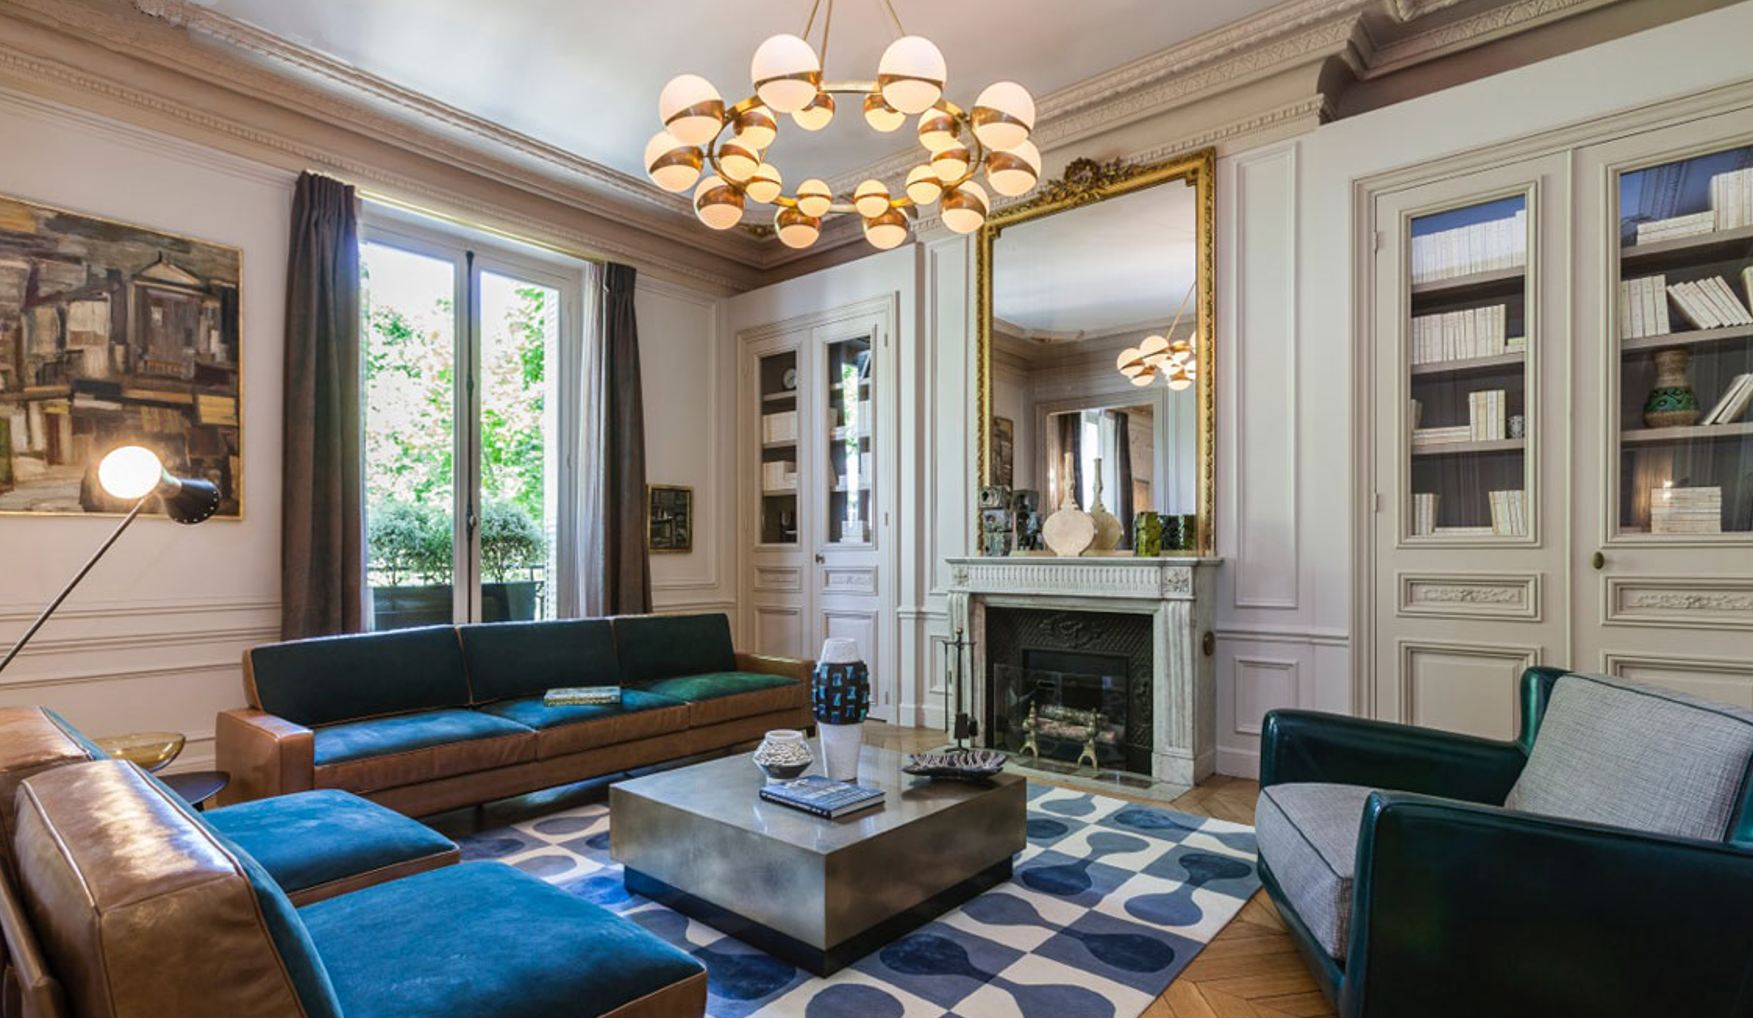 Property For Sale at Paris 7 - Saint-Germain. 186 sq.m. apartment. Exceptional amenities